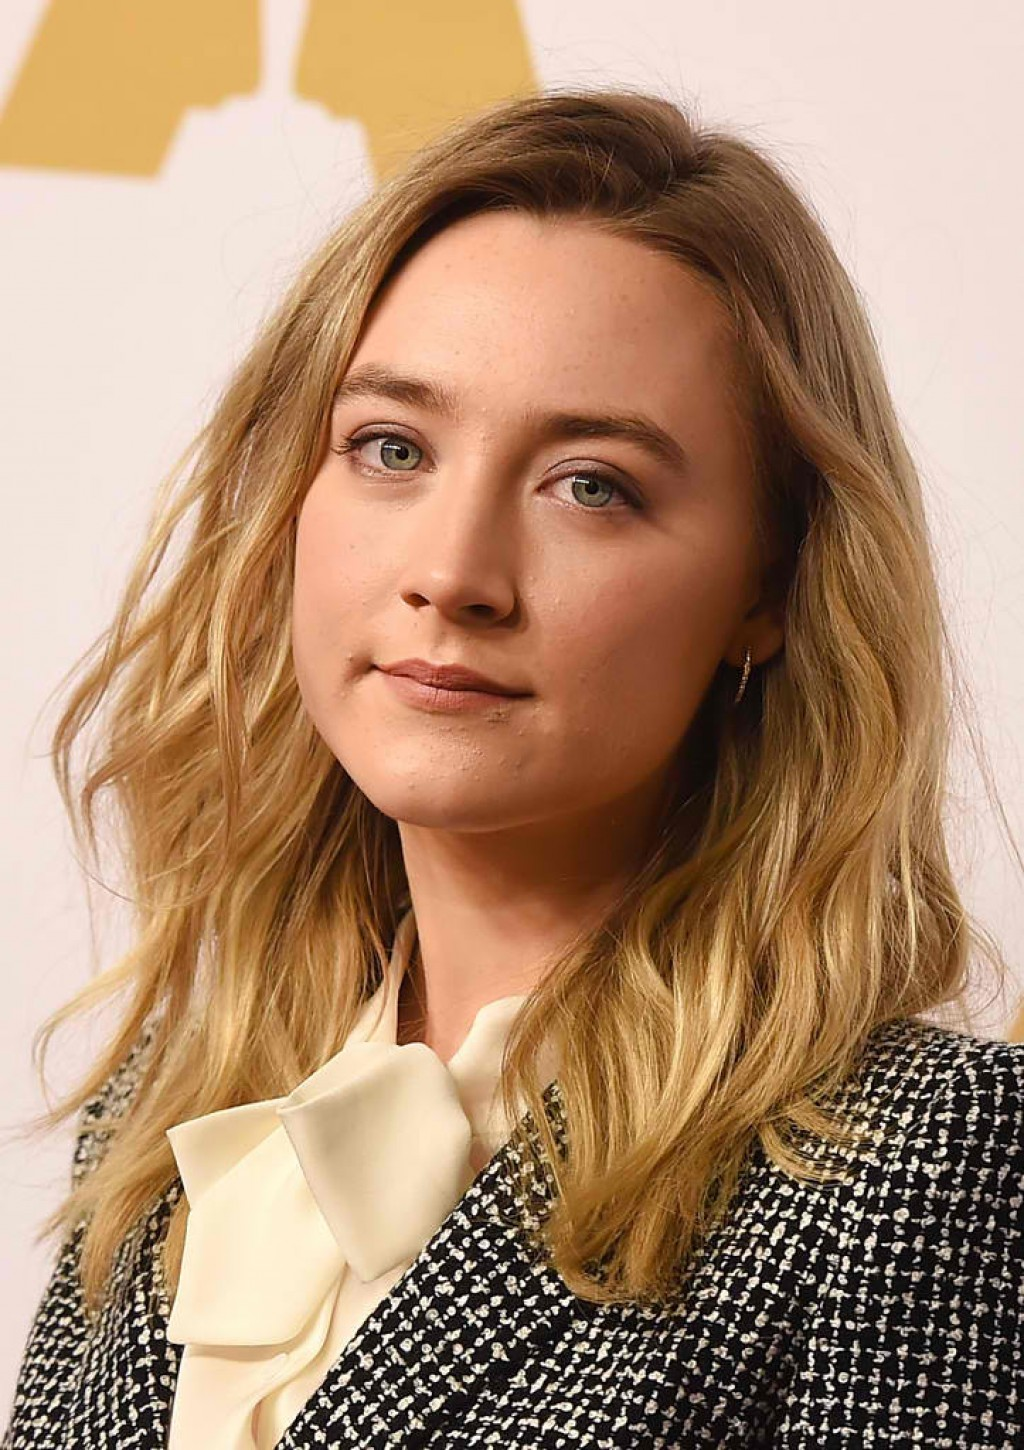 88th-Annual-Academy-Awards-Nominee-Luncheon-Saoirse-Ronan-Makeup-1024x1450